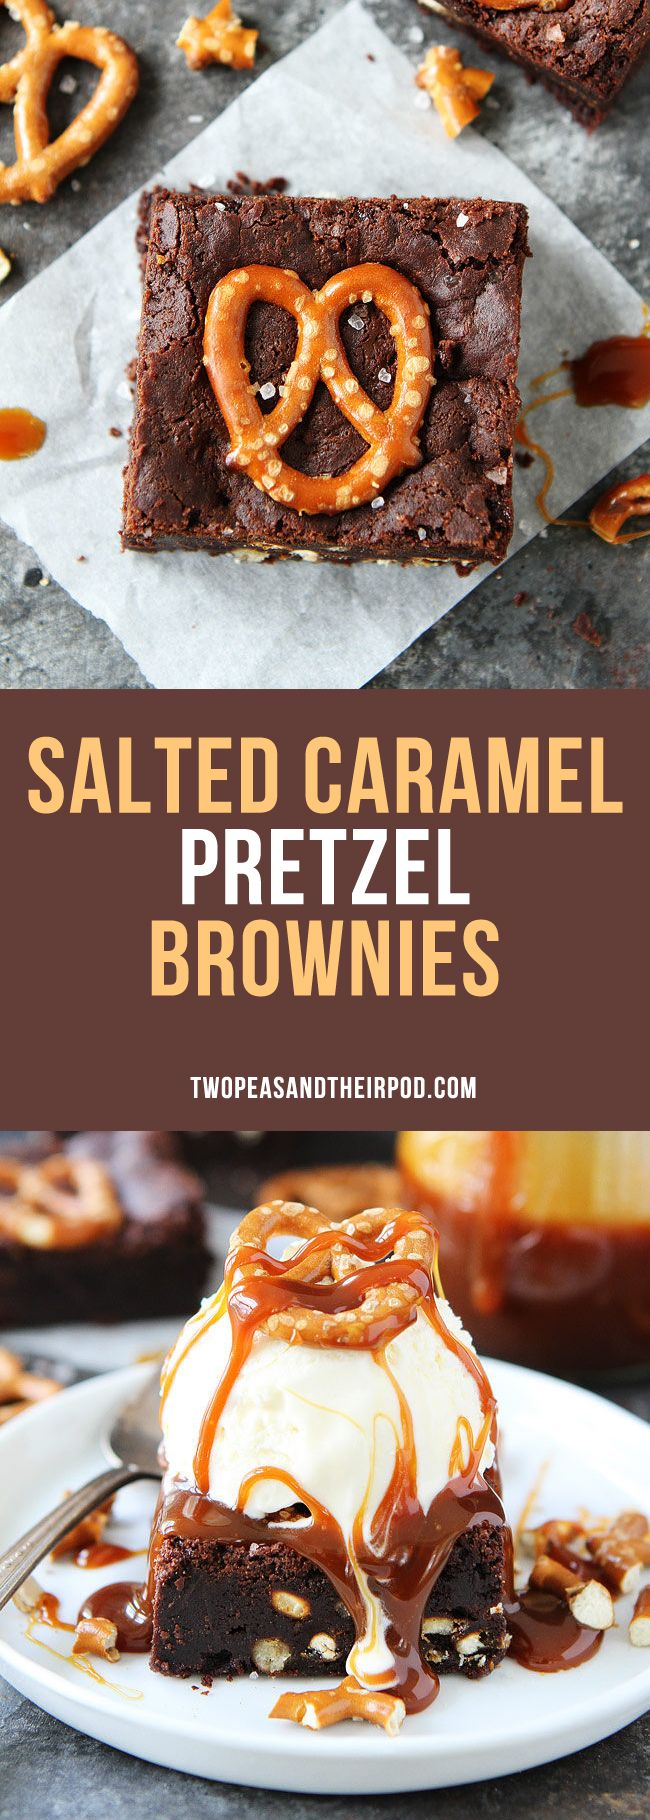 Salted Caramel Pretzel Brownies are fudgy, gooey brownies with pretzel pieces and a layer of salted caramel sauce. Top these rich chocolate brownies with ice cream and extra salted caramel sauce for